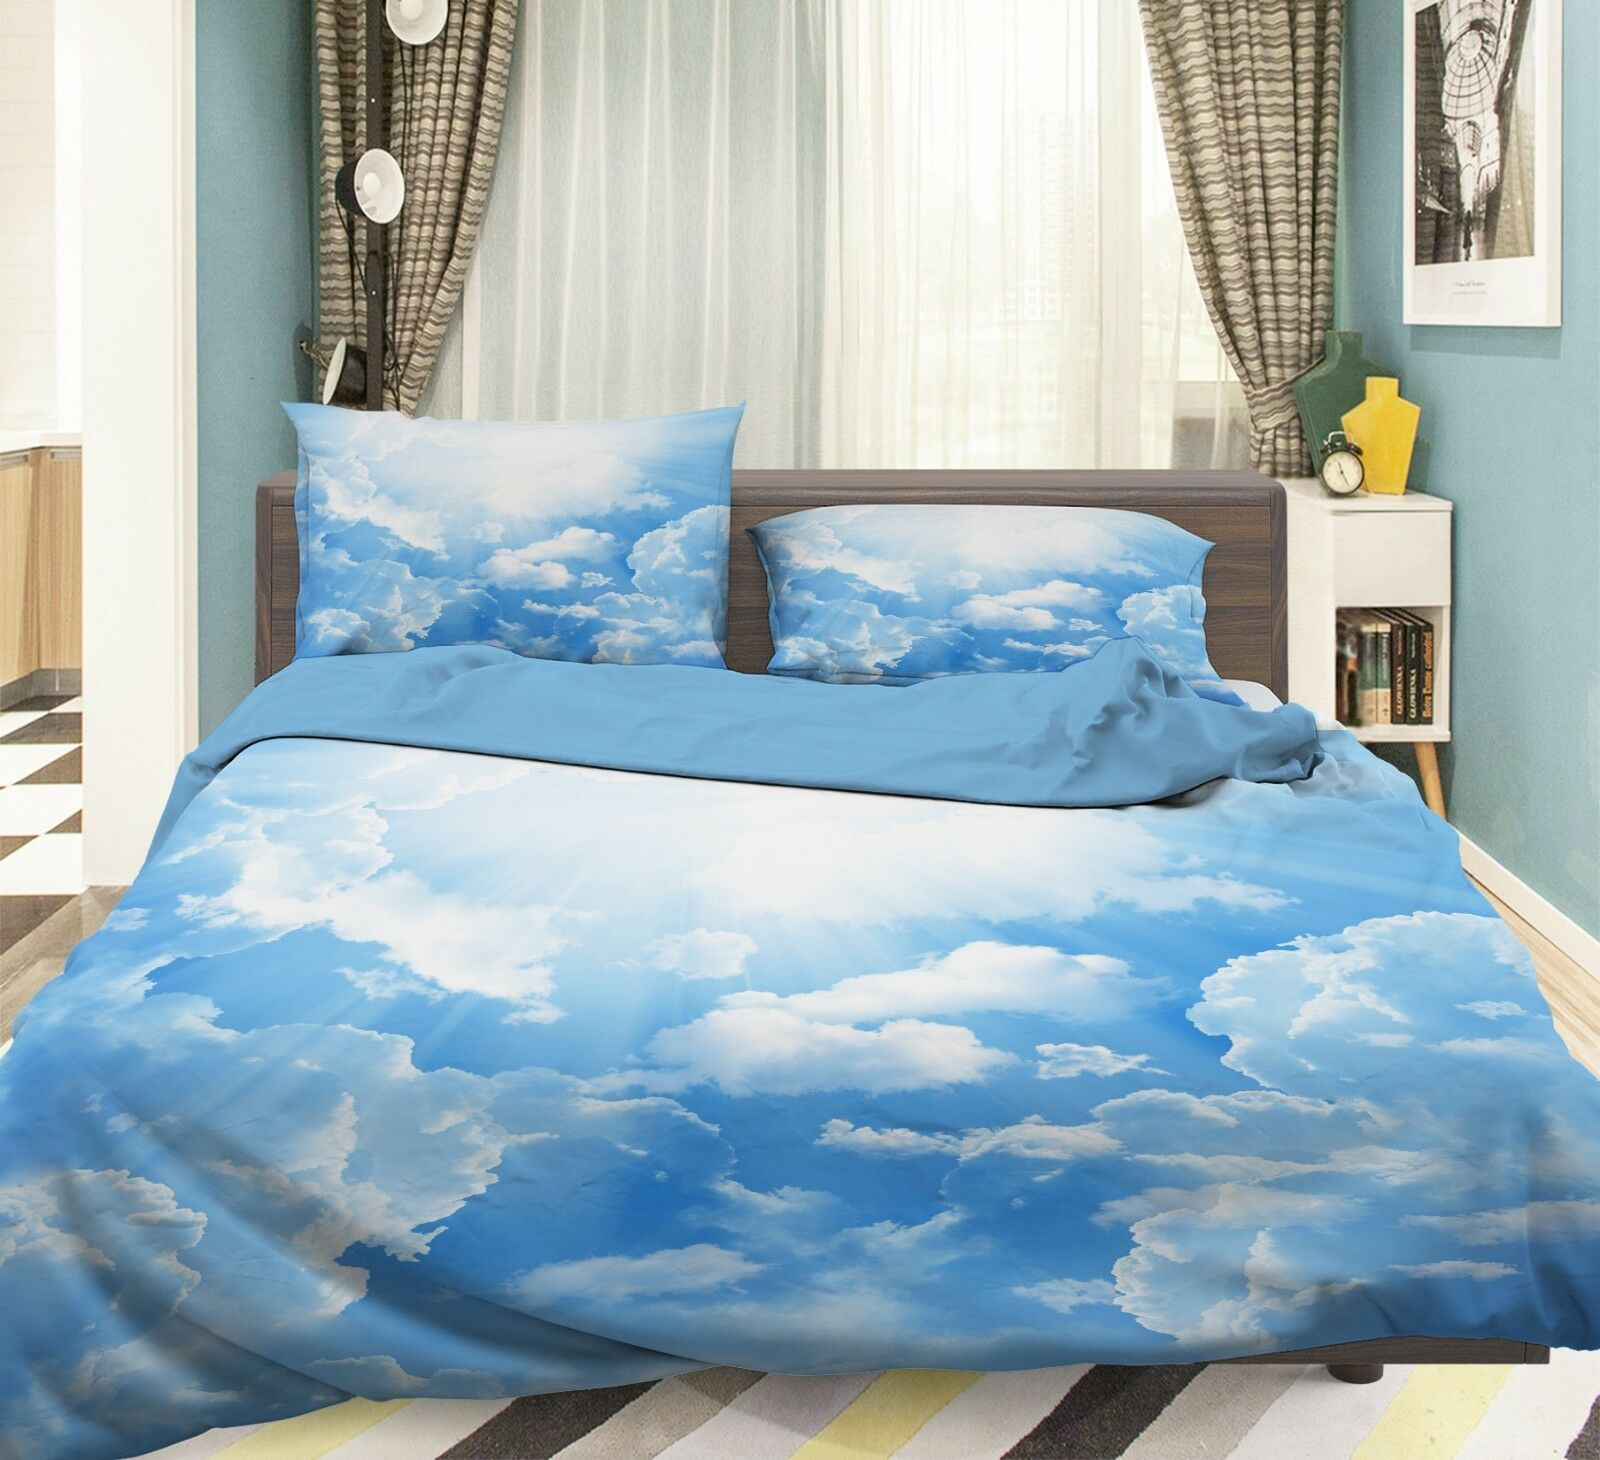 3D Himmel Weiße Wolken 56 Bett Kissenbezüge steppen Duvet Decken Set Single DE